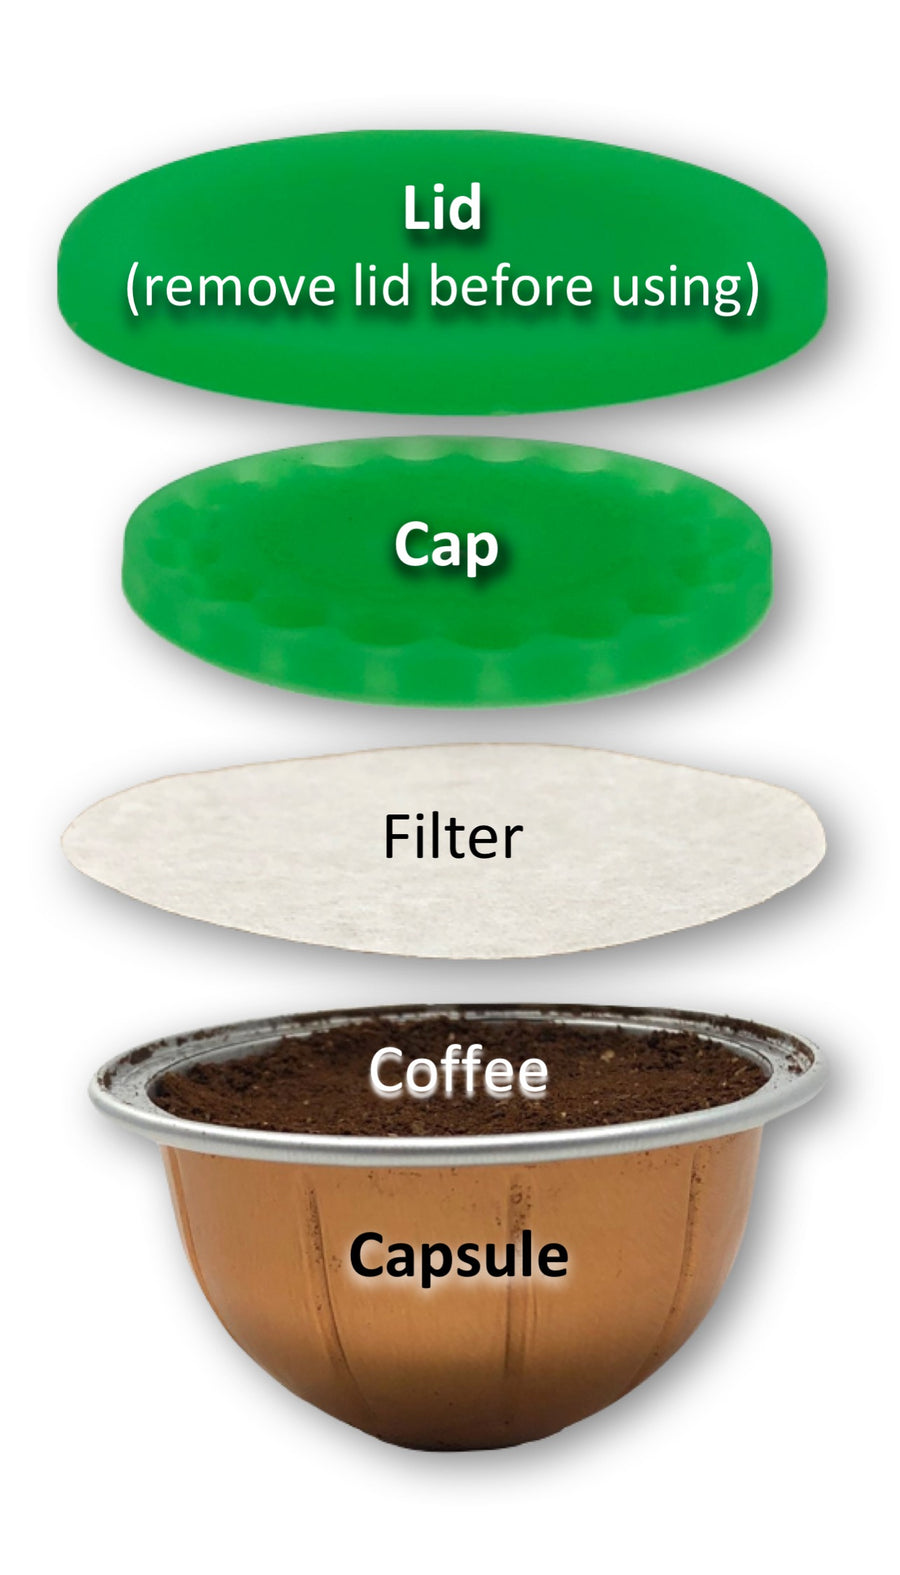 My-Cap's Silicone Cap and Lid to Reuse Capsules for Nespresso VertuoLine Brewers